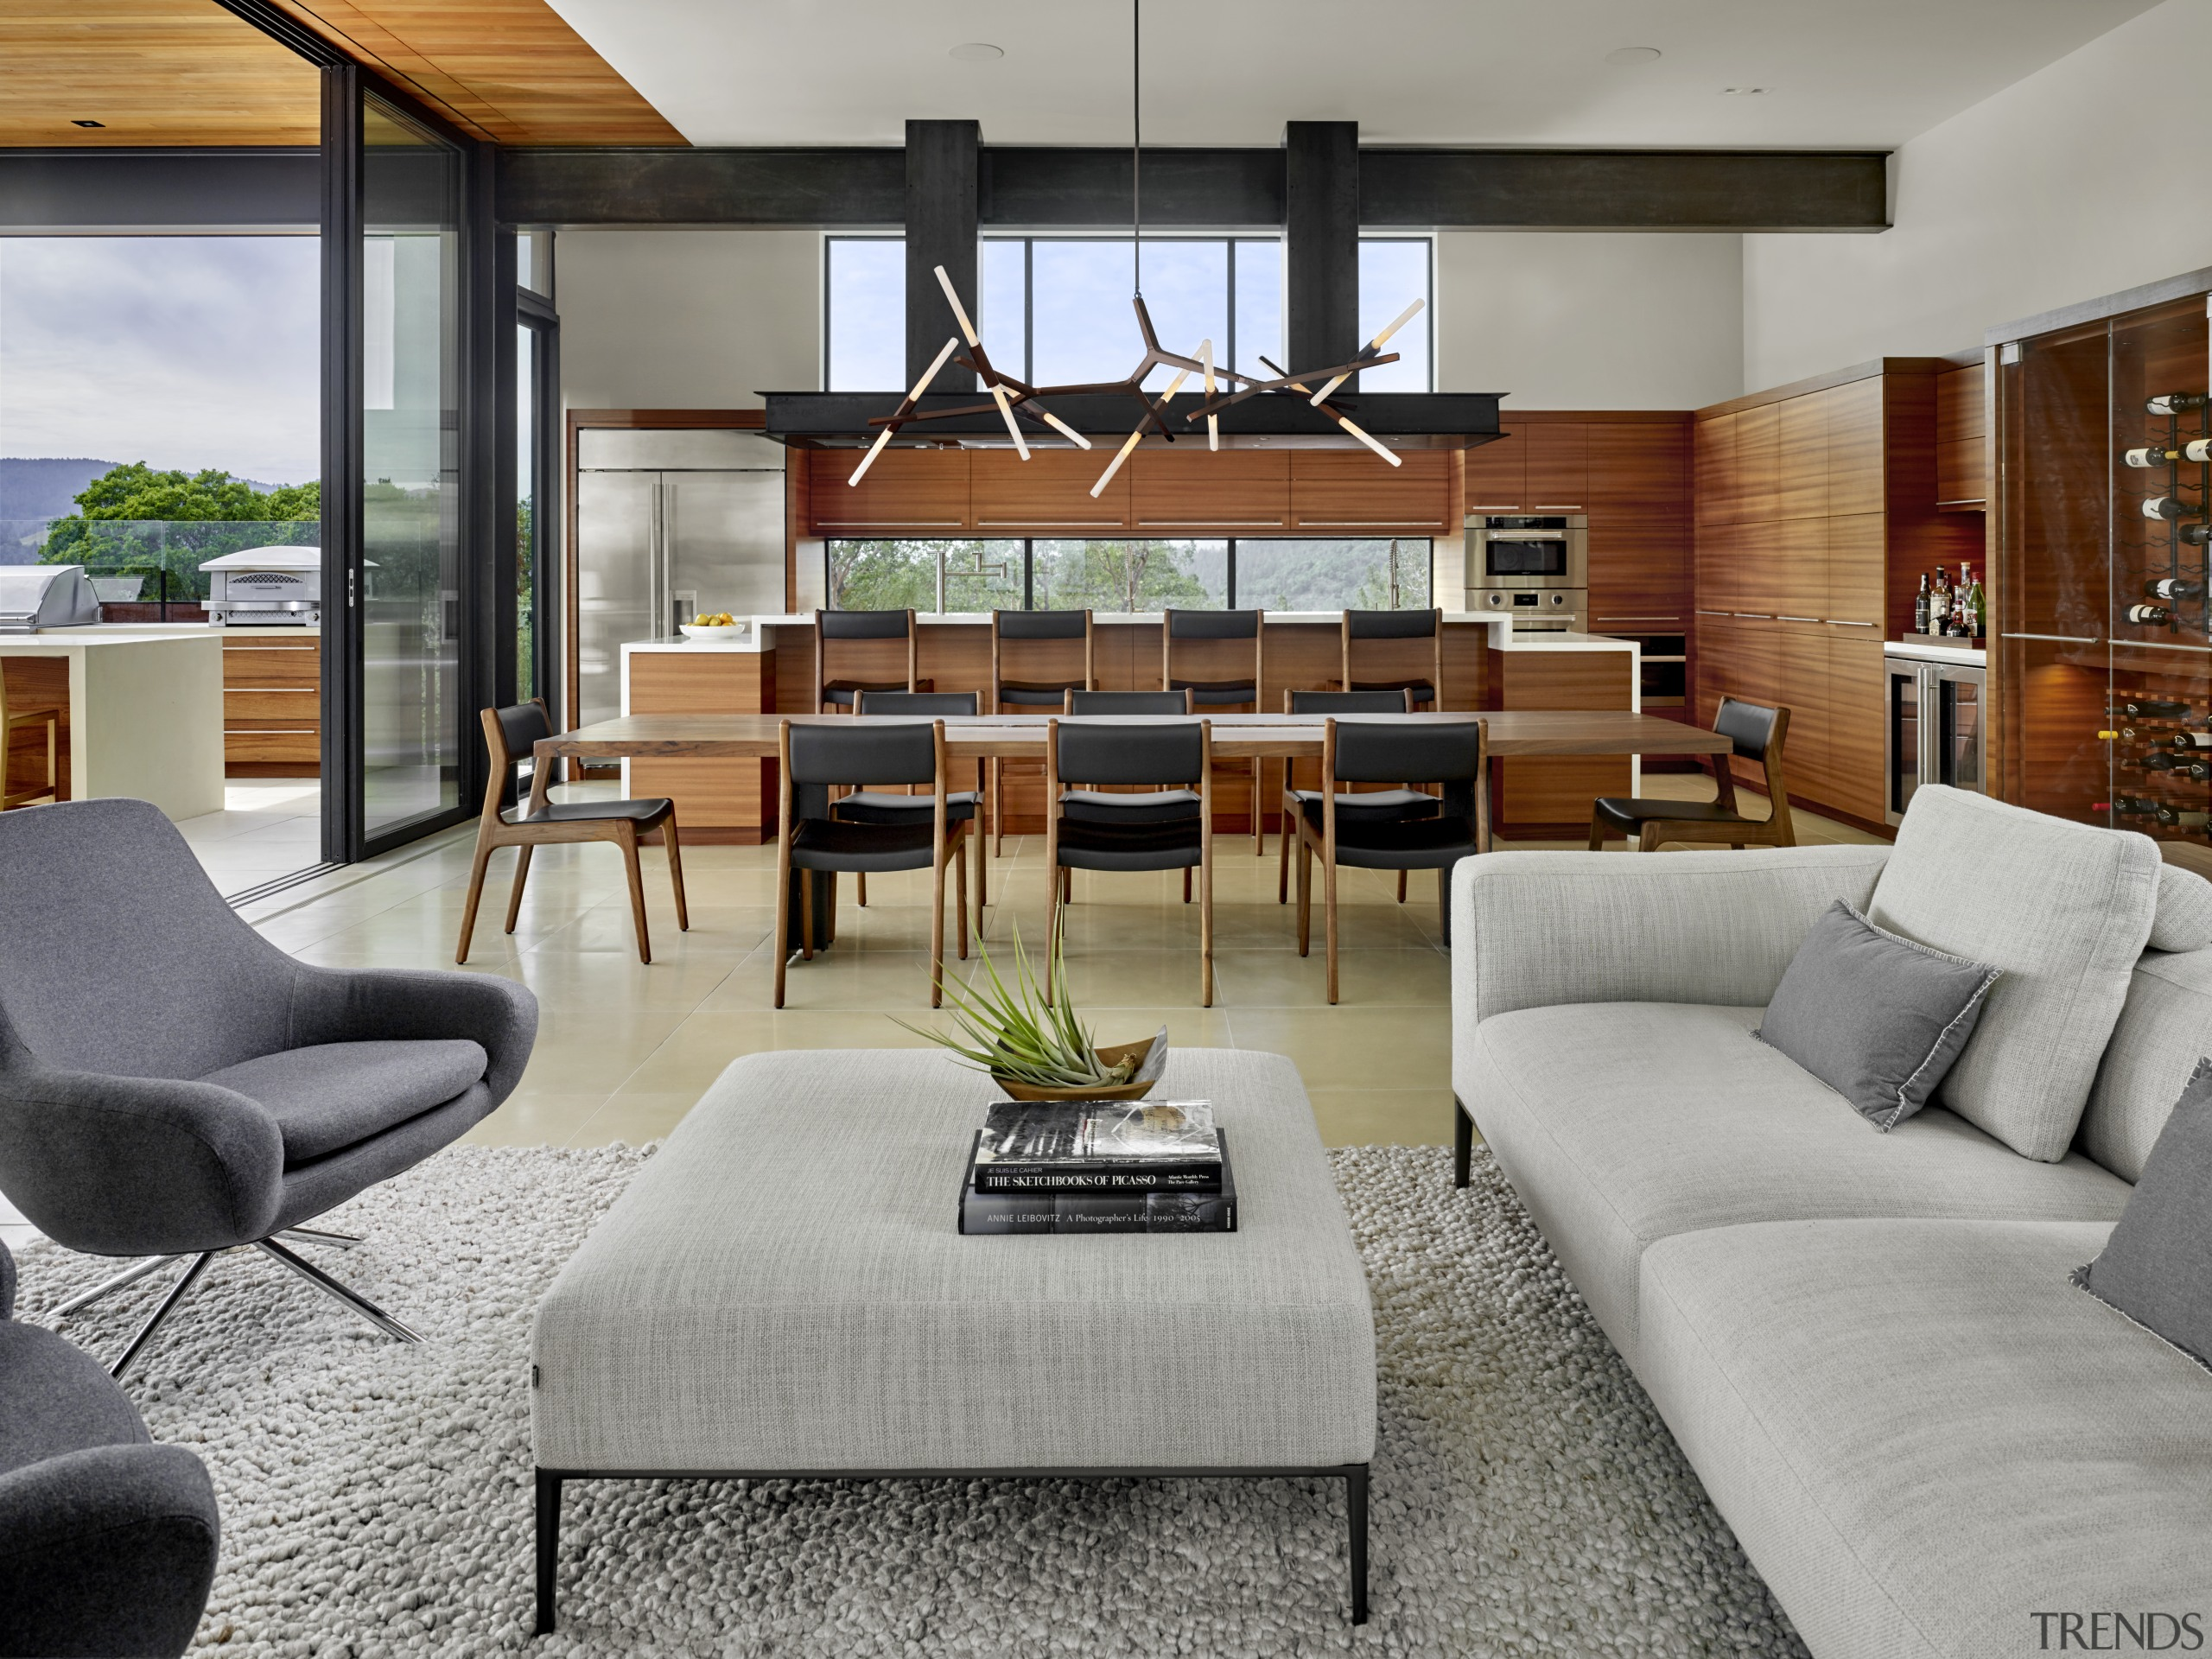 Two substantial blackened steel beams provide interior structural architecture, coffee table, couch, floor, flooring, furniture, hardwood, home, house, interior design, lighting, living room, table, dining, de Vito Architecture + construction